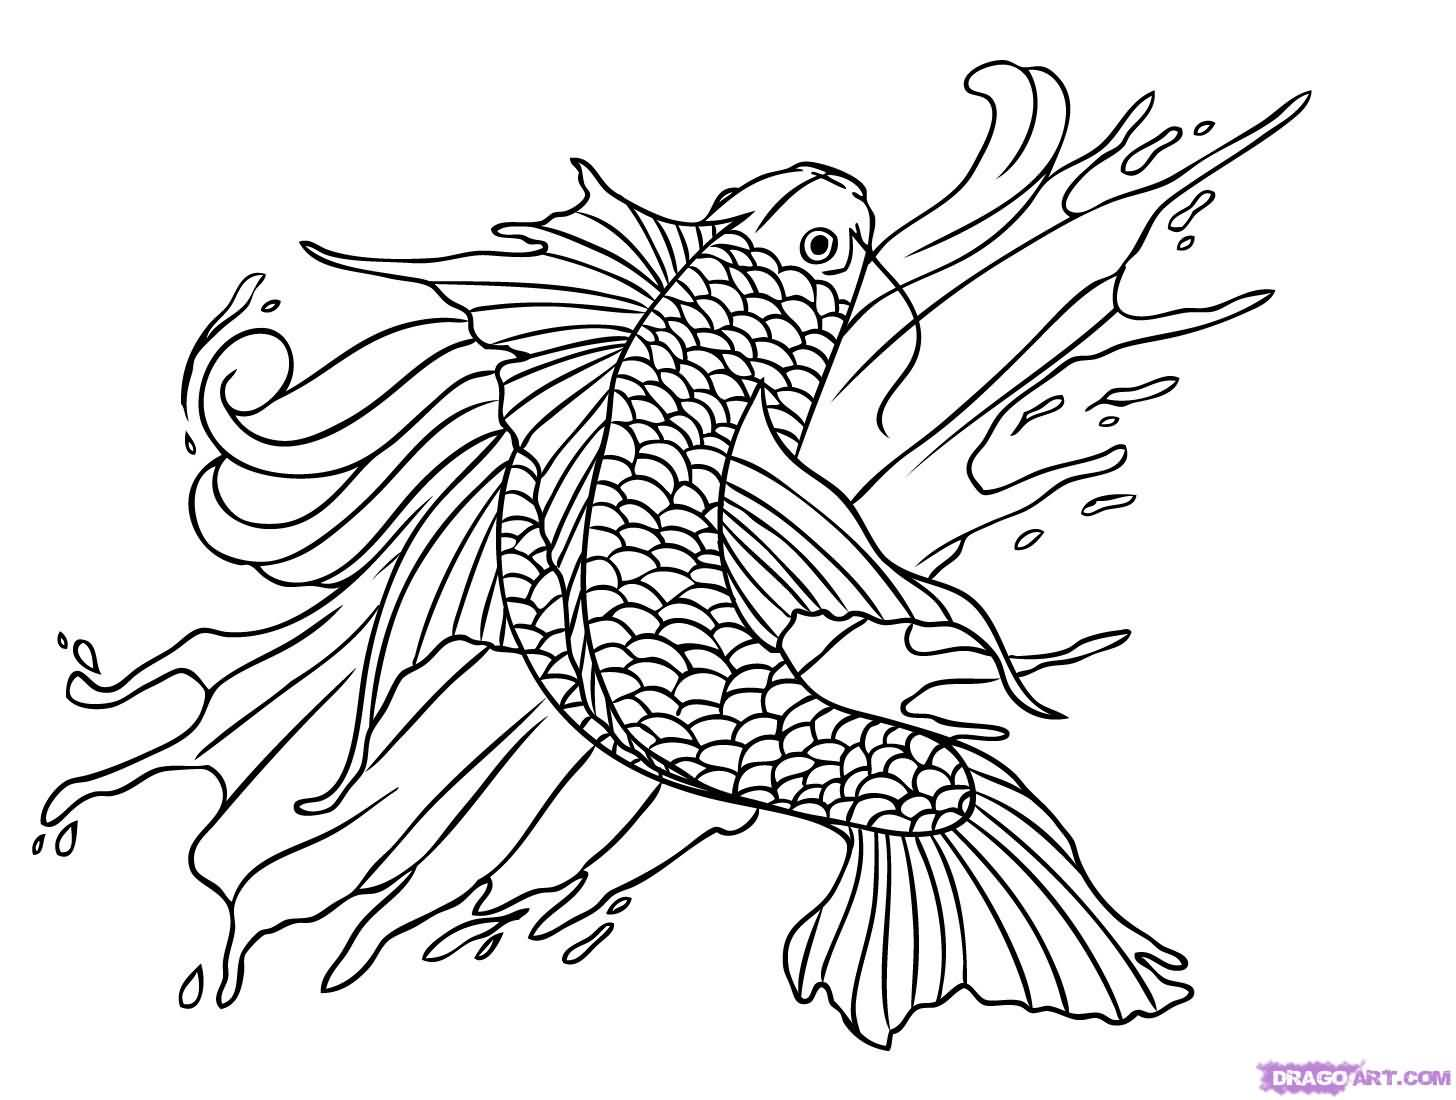 Simple Koi Drawing At Getdrawings Com Free For Personal Use Simple